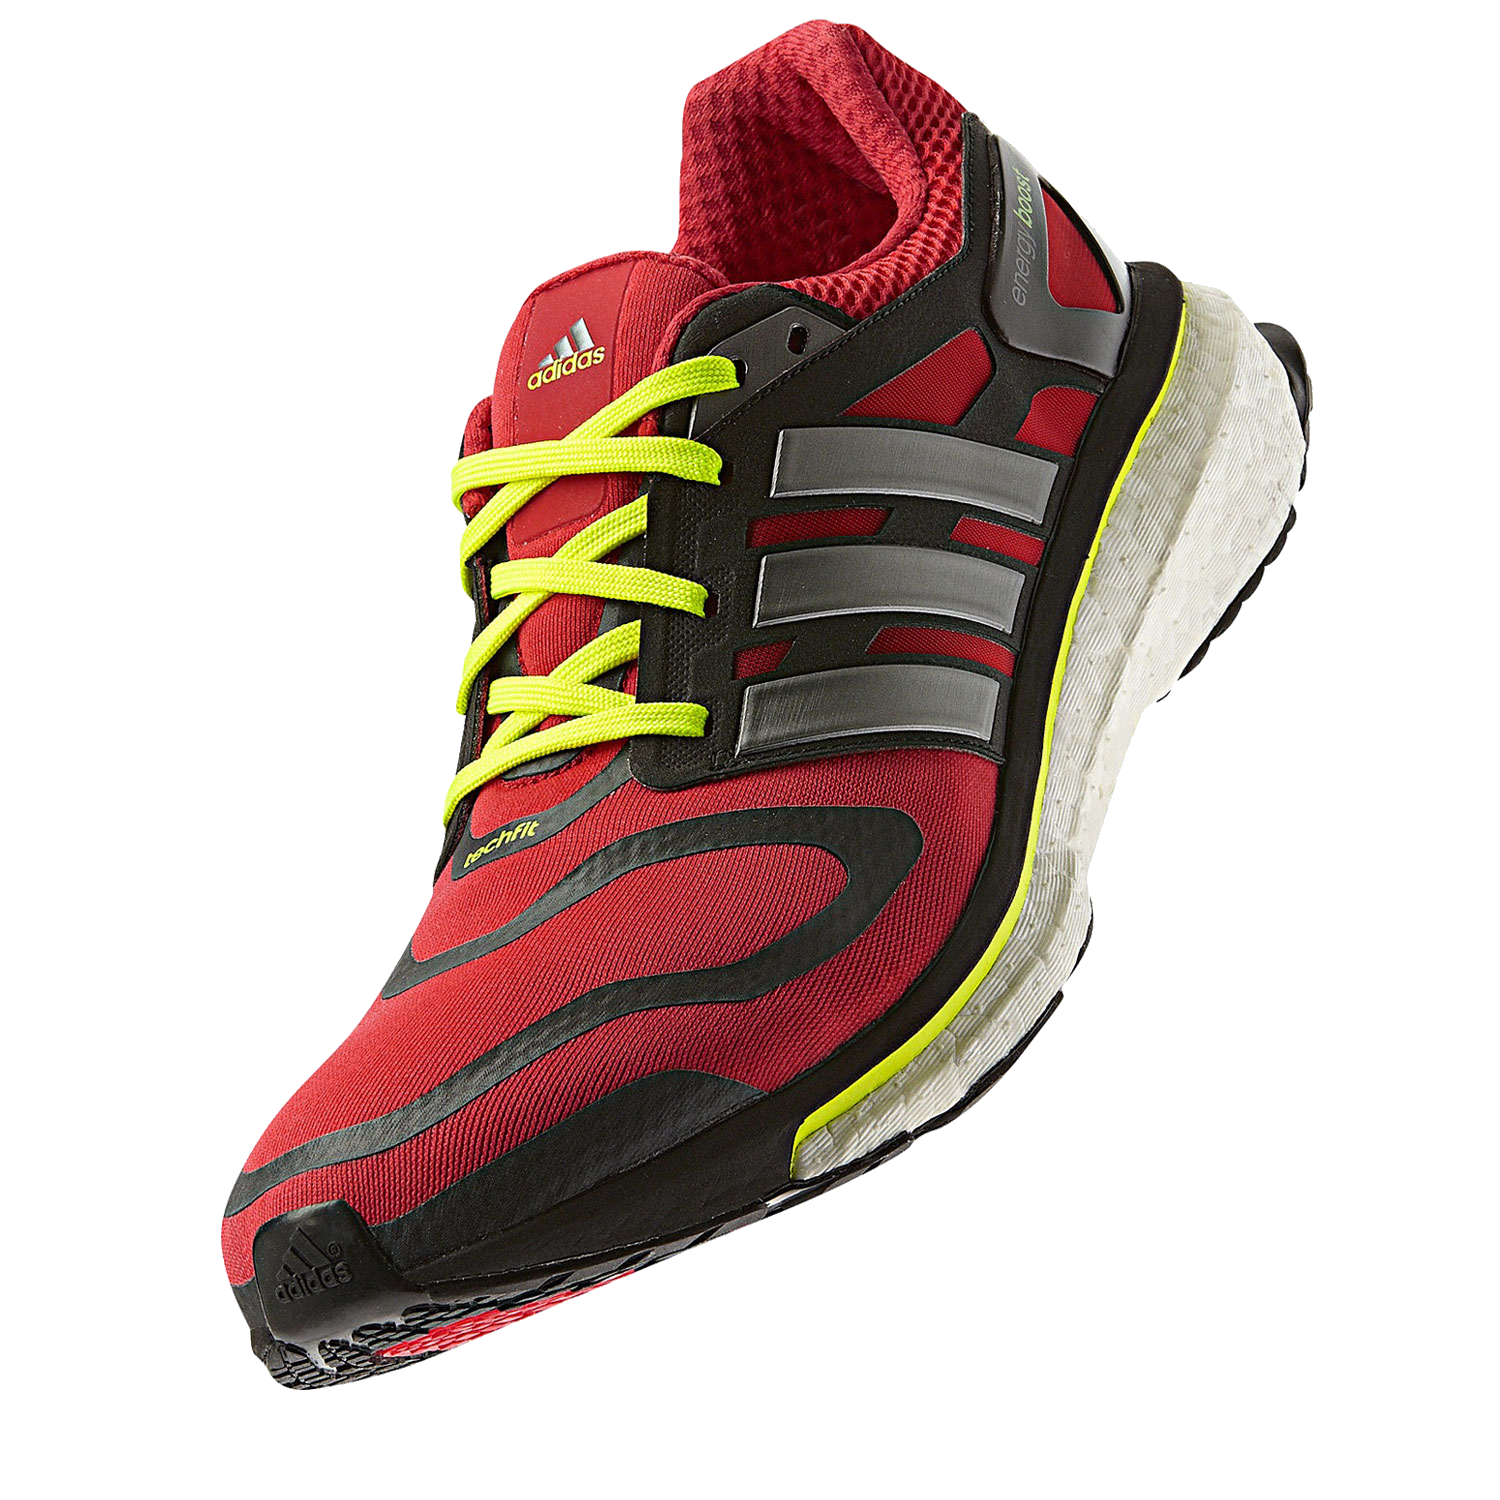 Best Running Shoes For Mild Pronations